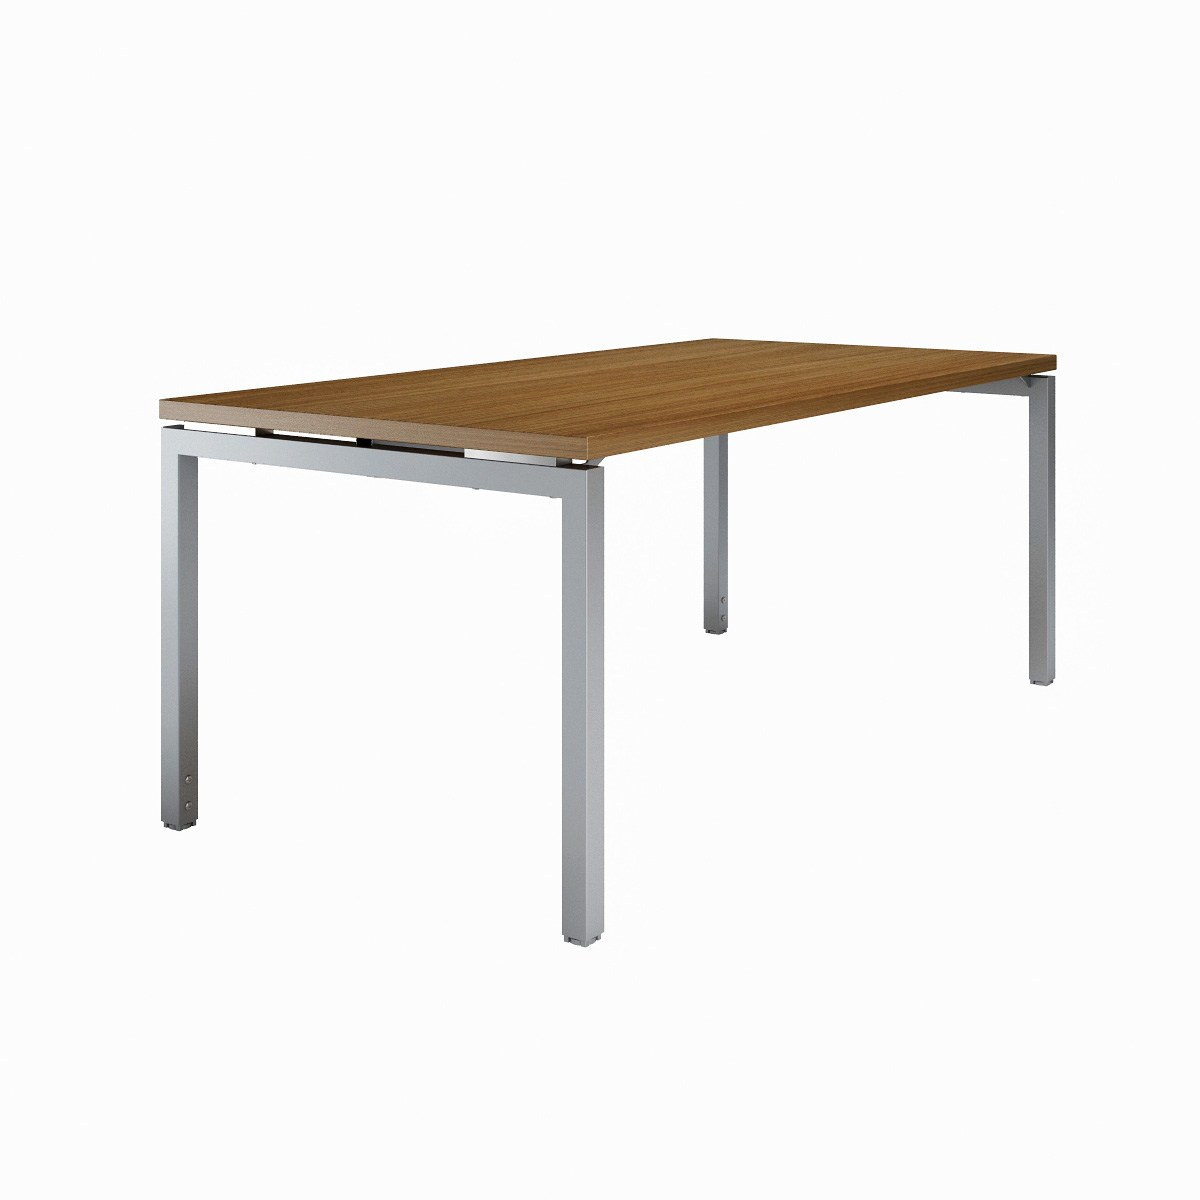 Sectional workstation desk idea 01 by quadrifoglio for Quadrifoglio sistemi d arredo